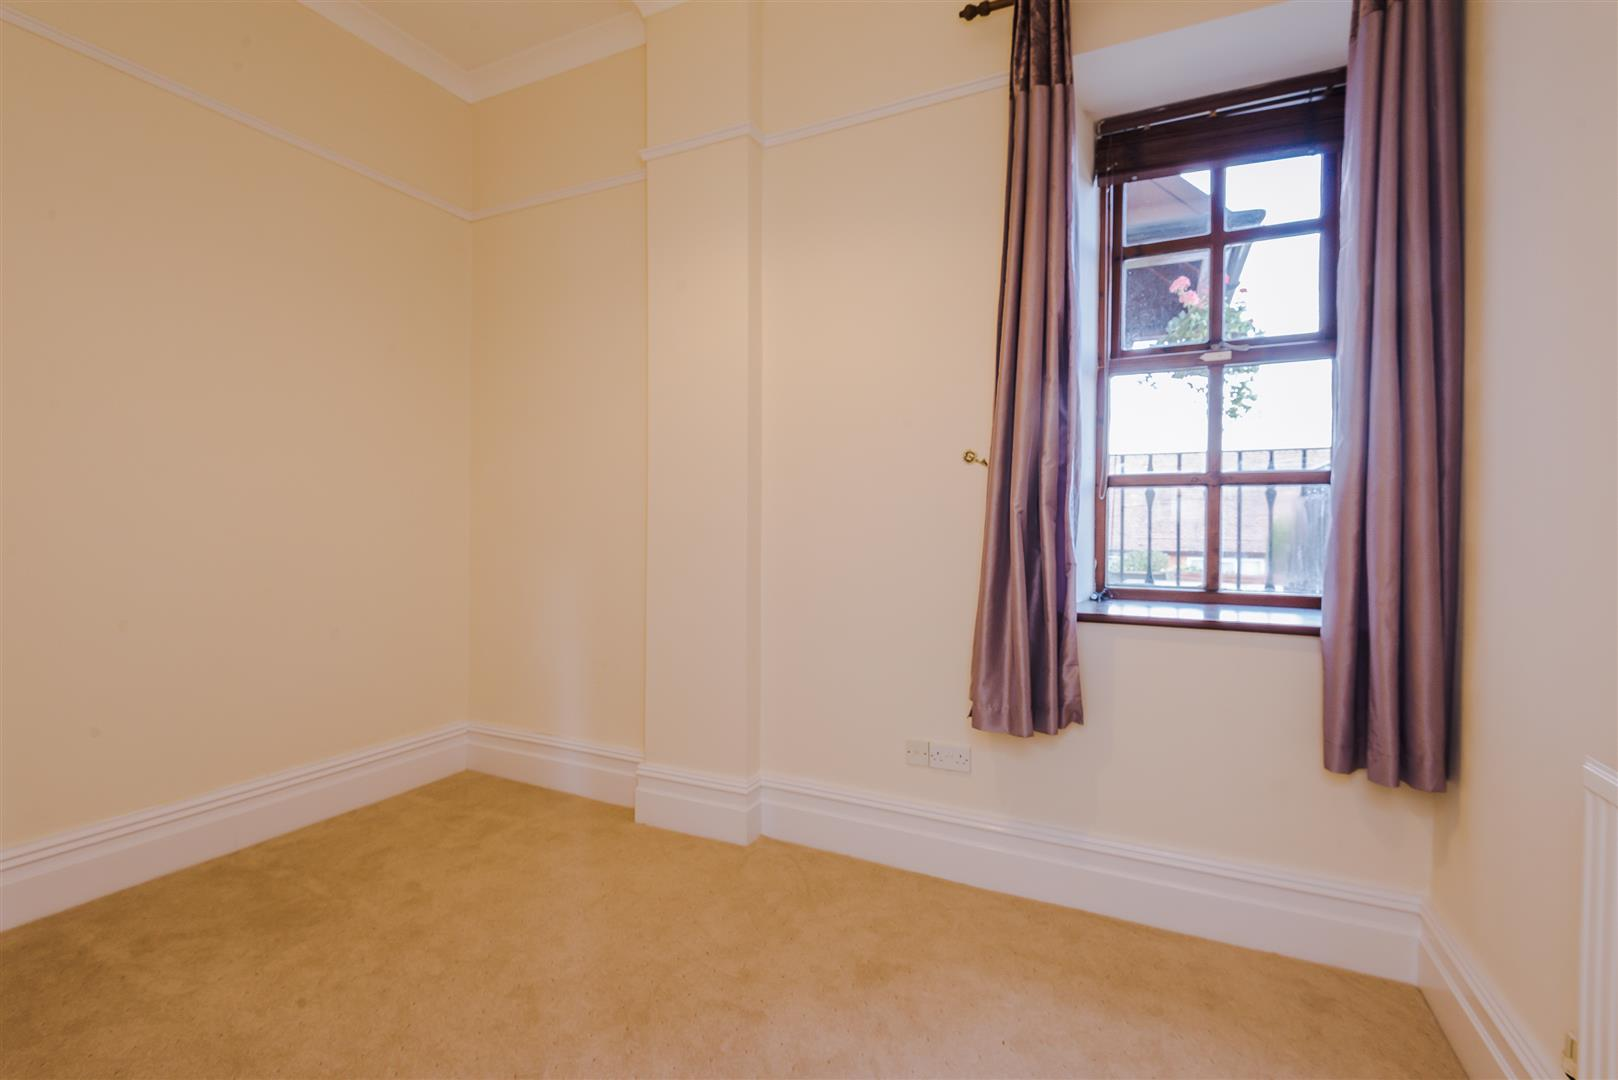 2 Bedroom Apartment For Sale Image 8